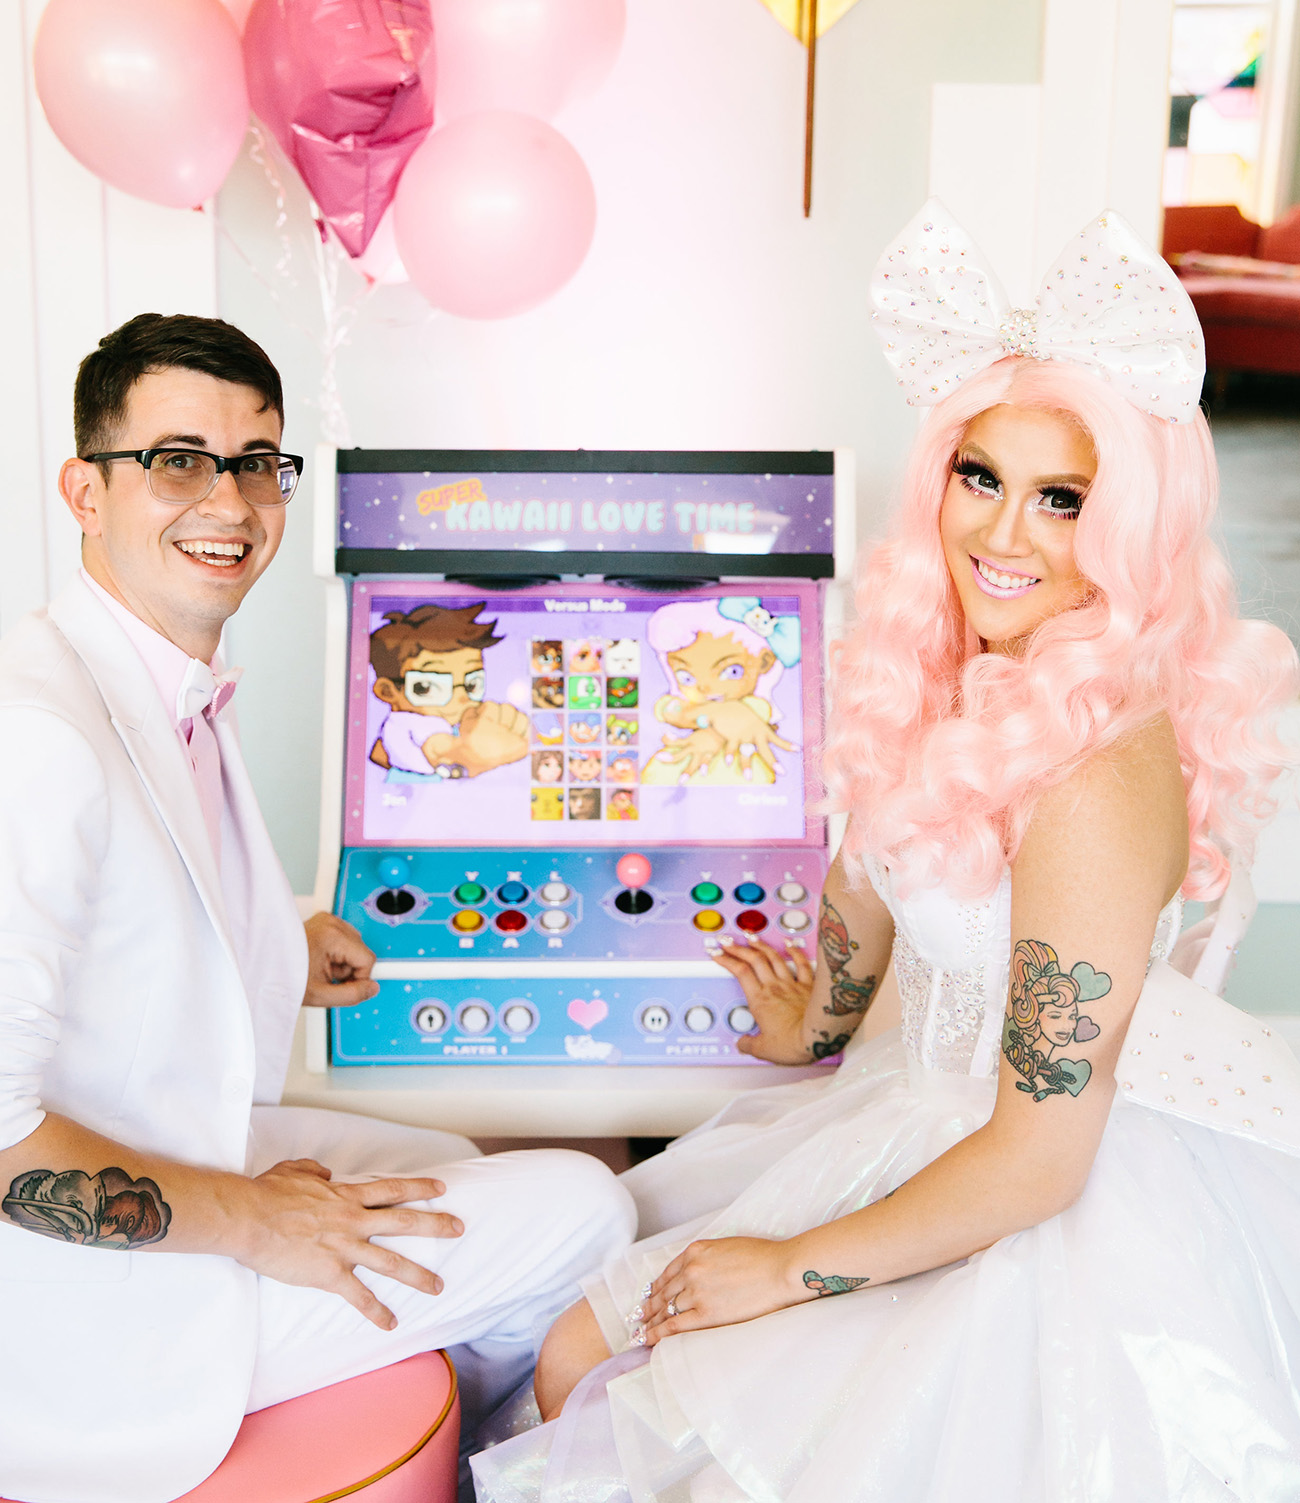 video game of the wedding couple created by the groom!!